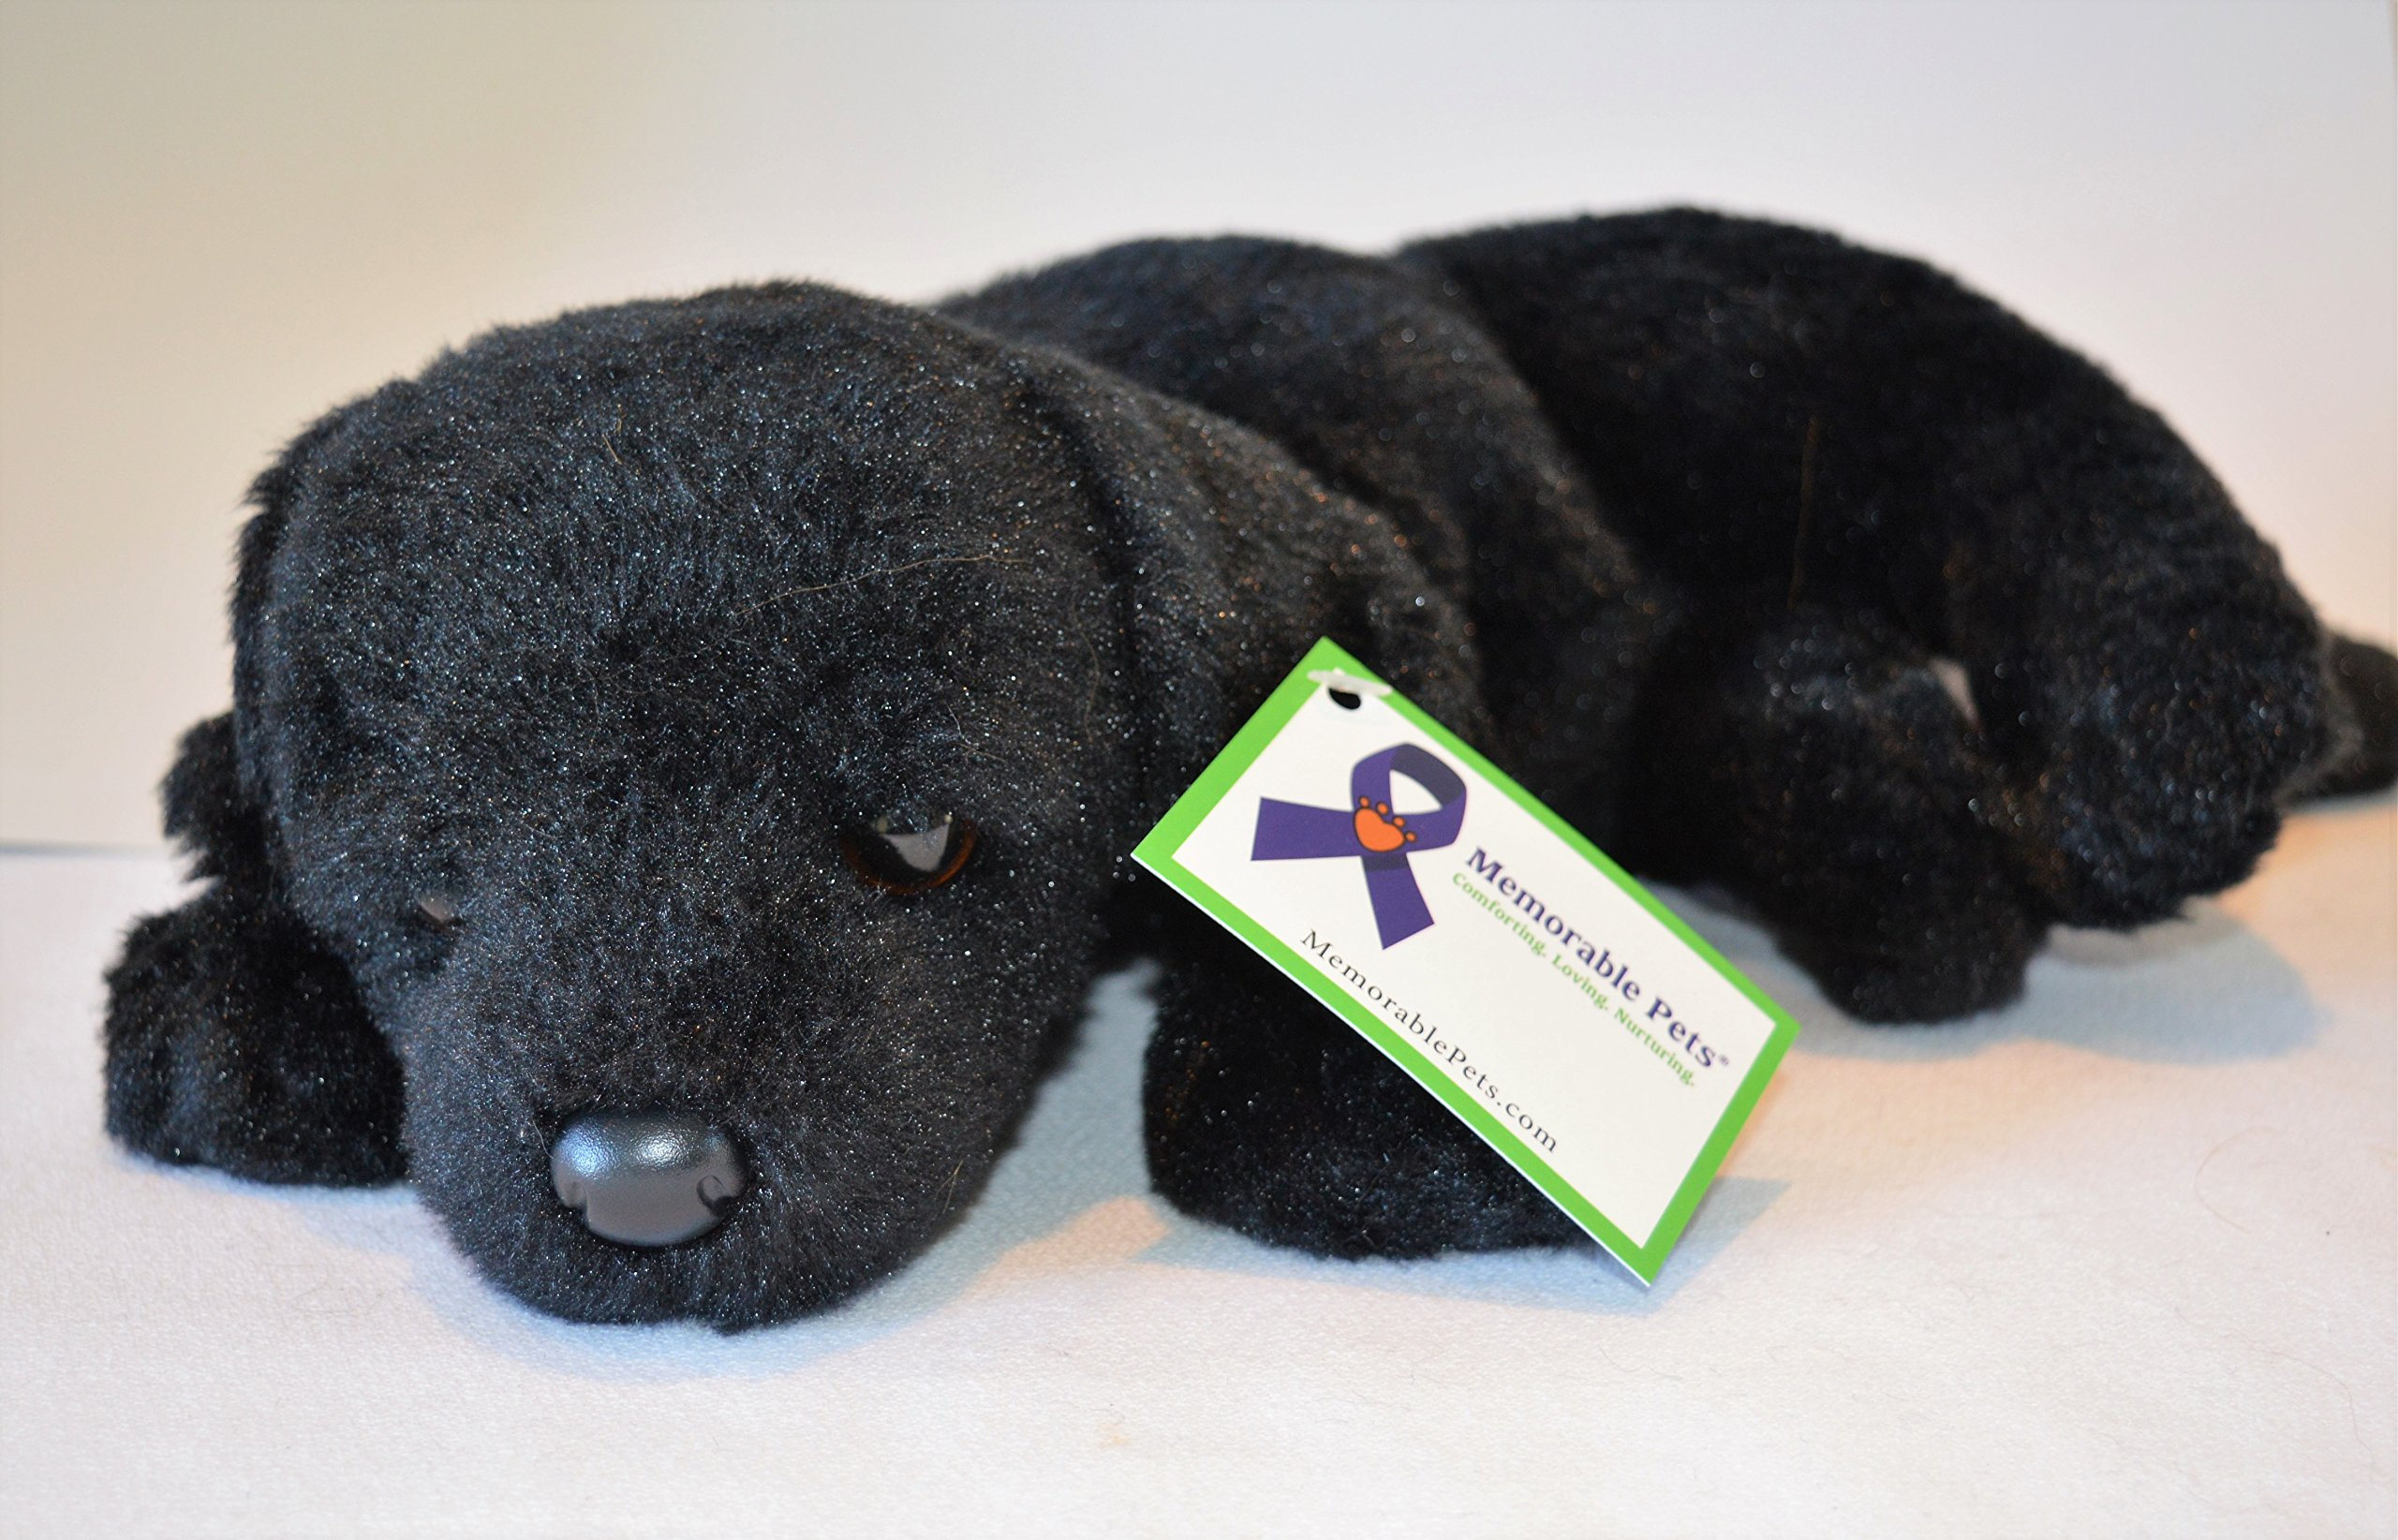 Reclining Black Lab Puppy - Stuffed Animal Therapy for People with Memory Loss from Aging and Caregivers by Memorable Pets